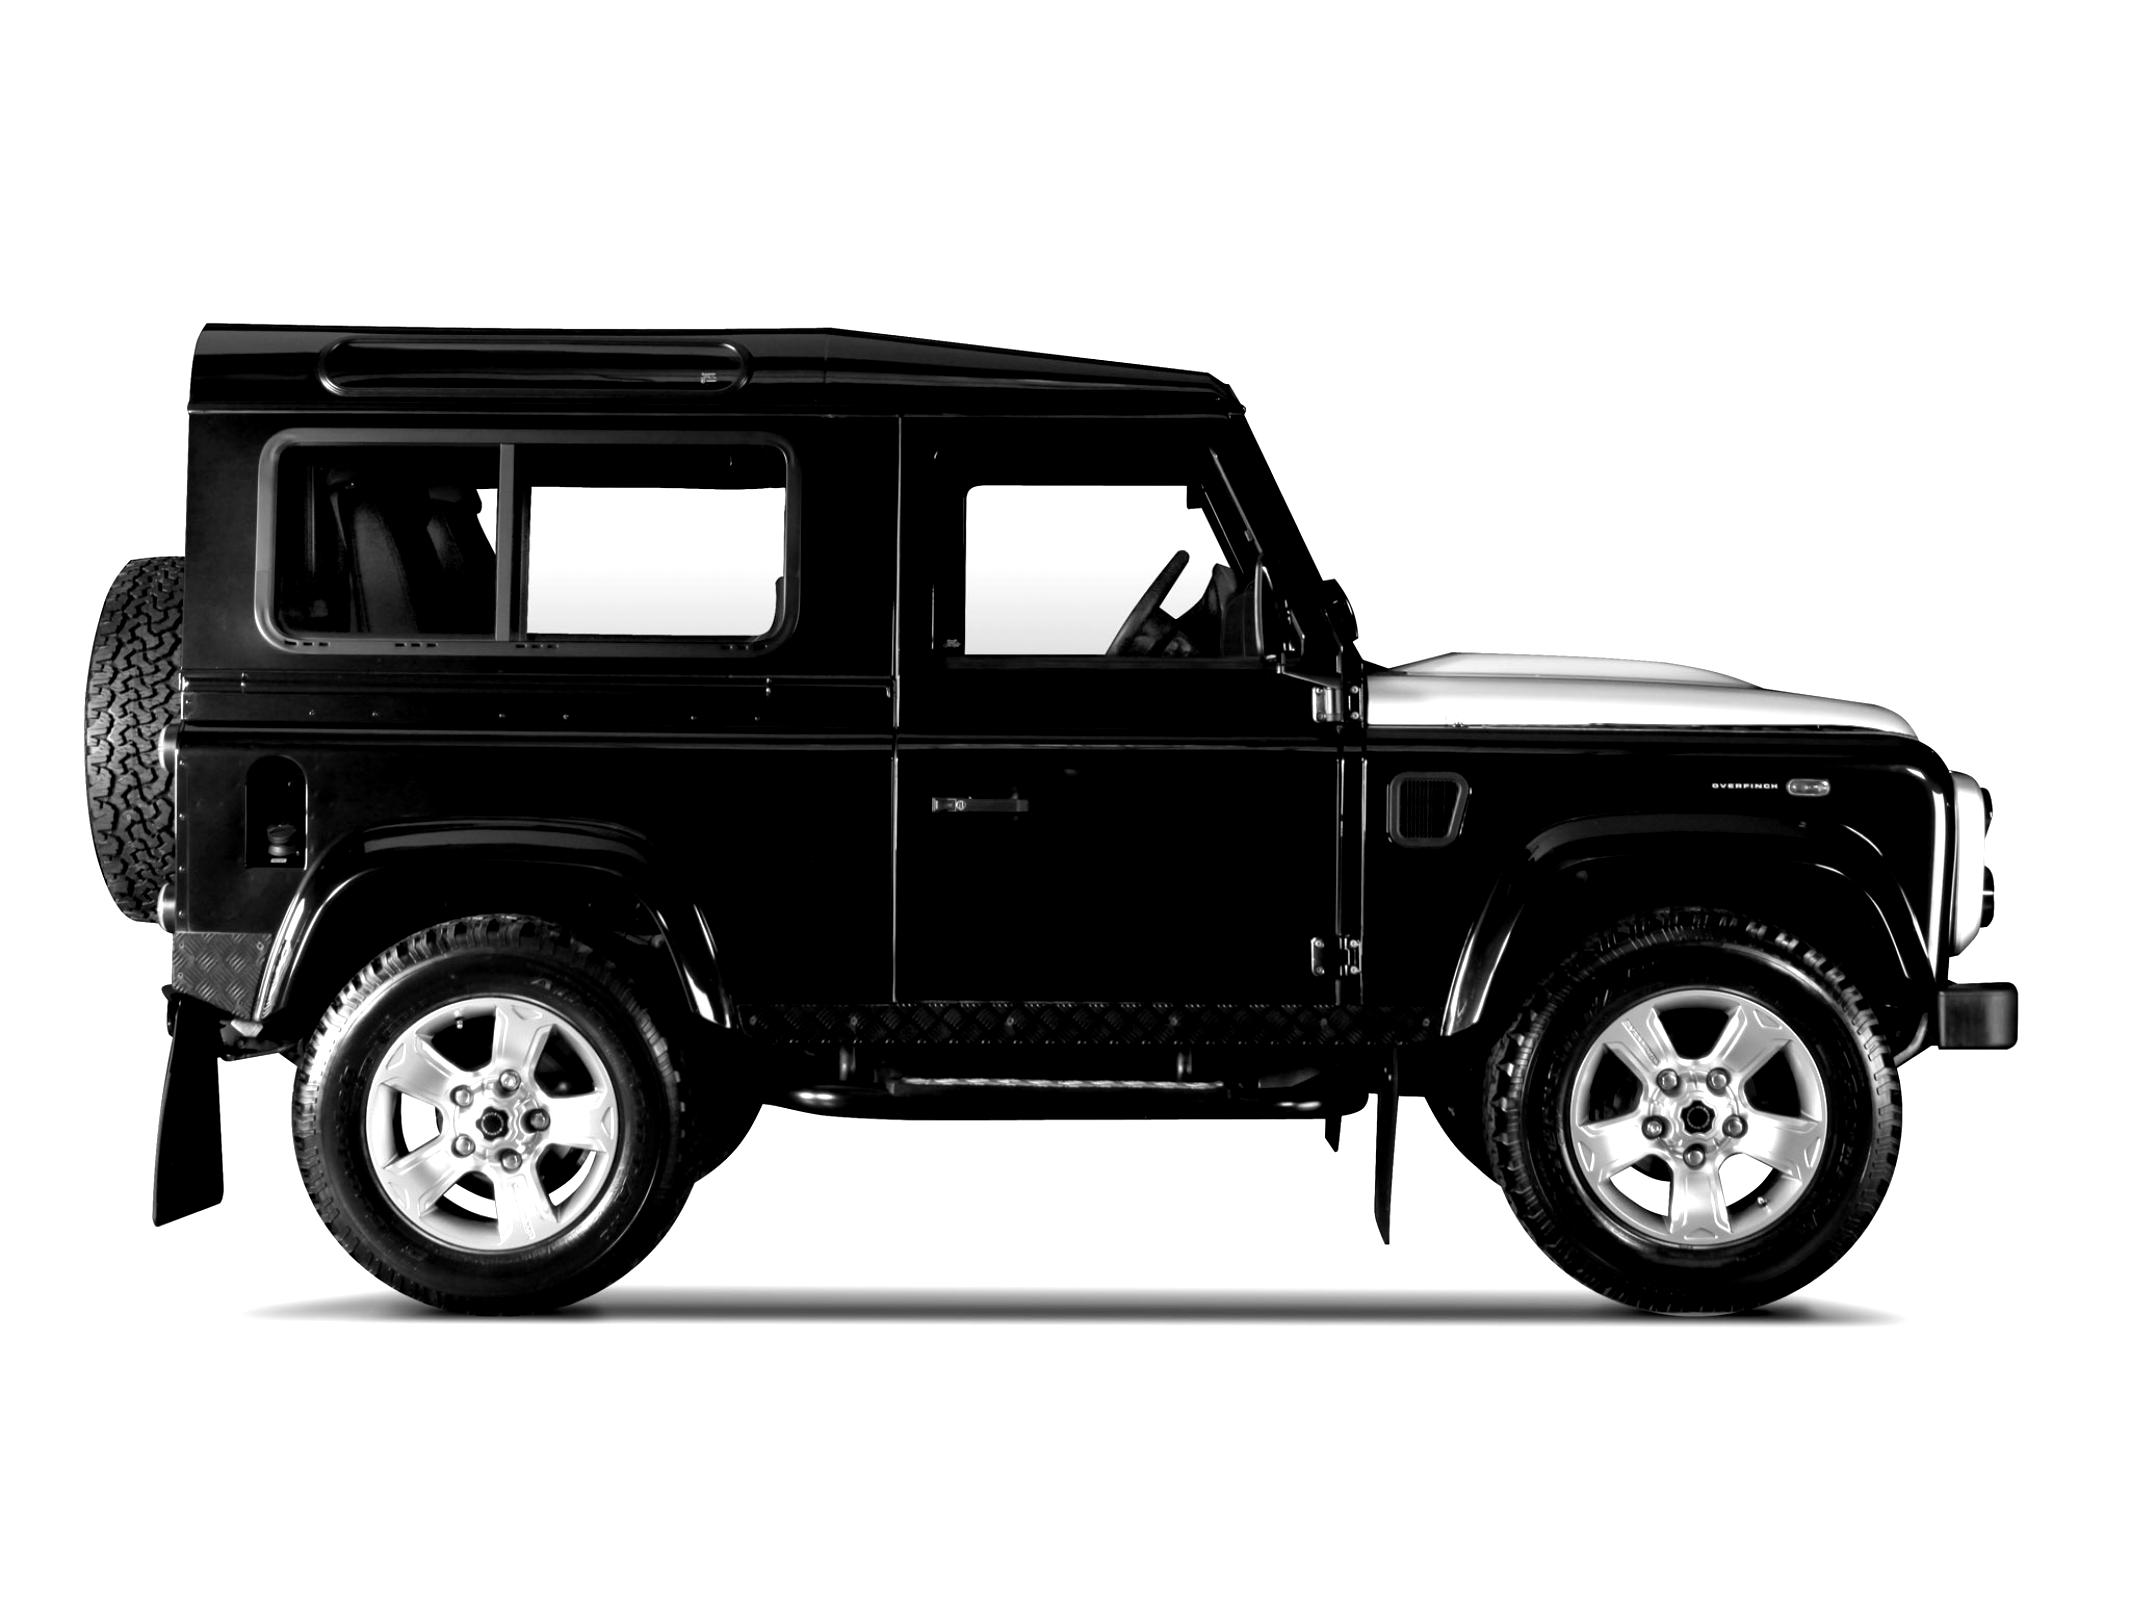 land rover defender 90 2012 on. Black Bedroom Furniture Sets. Home Design Ideas